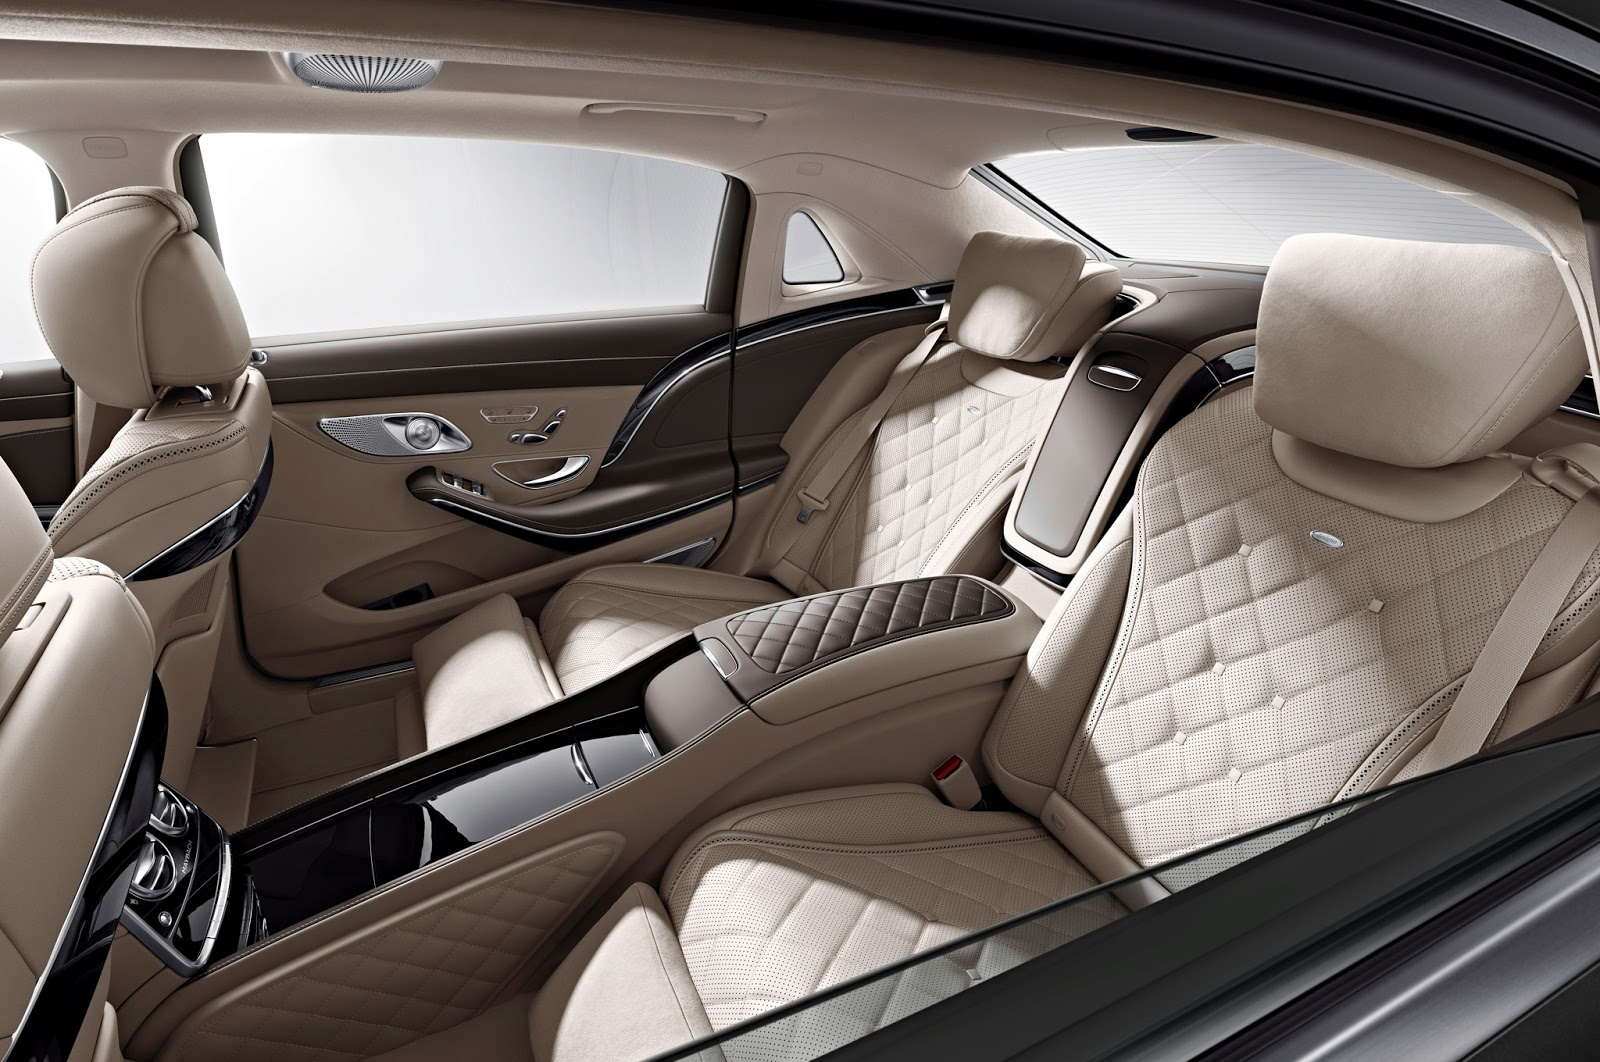 Mercedes Maybach S550 An Overview Of Pres Buhari S Official Car Photos